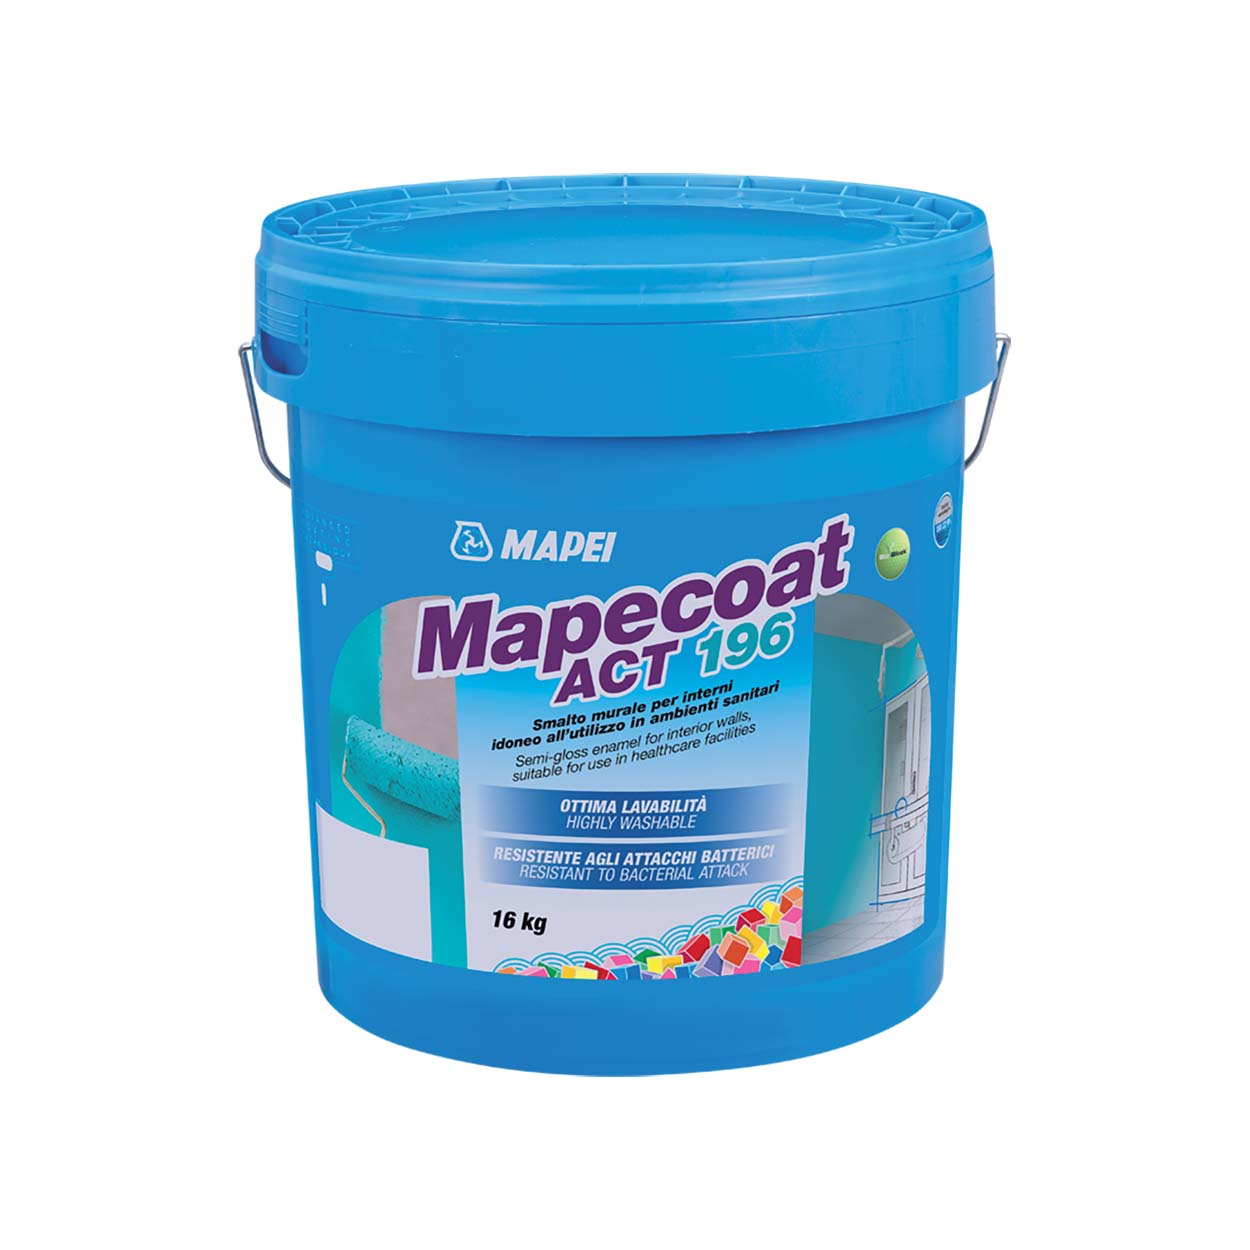 Enamel wall paint for internal surface Mapei - Mapecoat-Act-196-16kg packaging